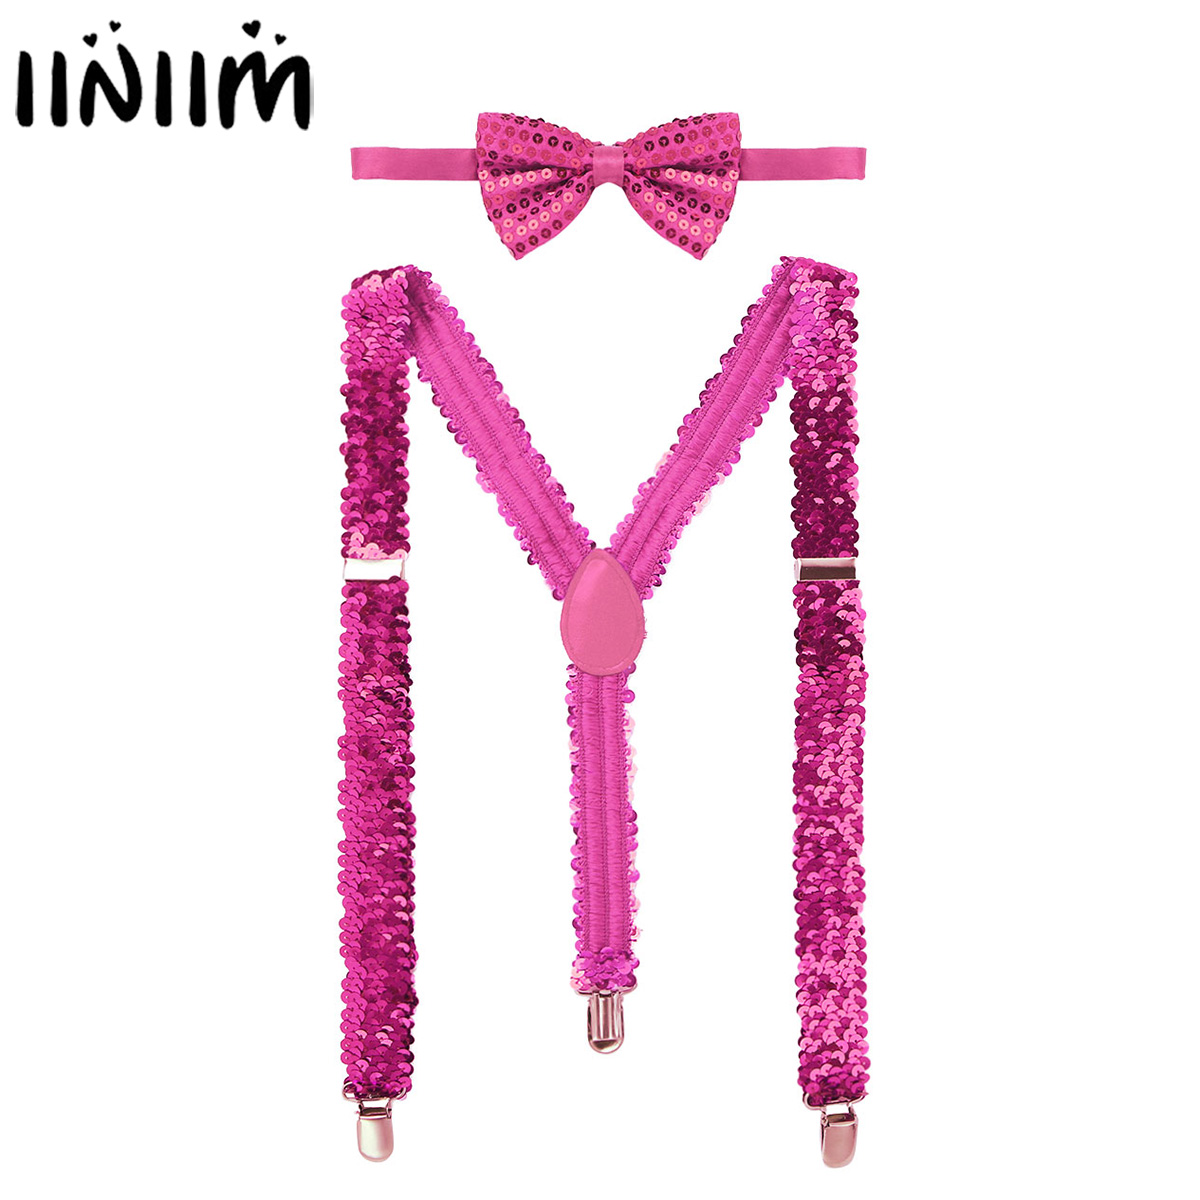 Iiniim Womens Shiny Sequins Elastic Y Shape Adjustable Braces Pant Suspenders Straps With Bow Tie For Cosplay Party Clubwear